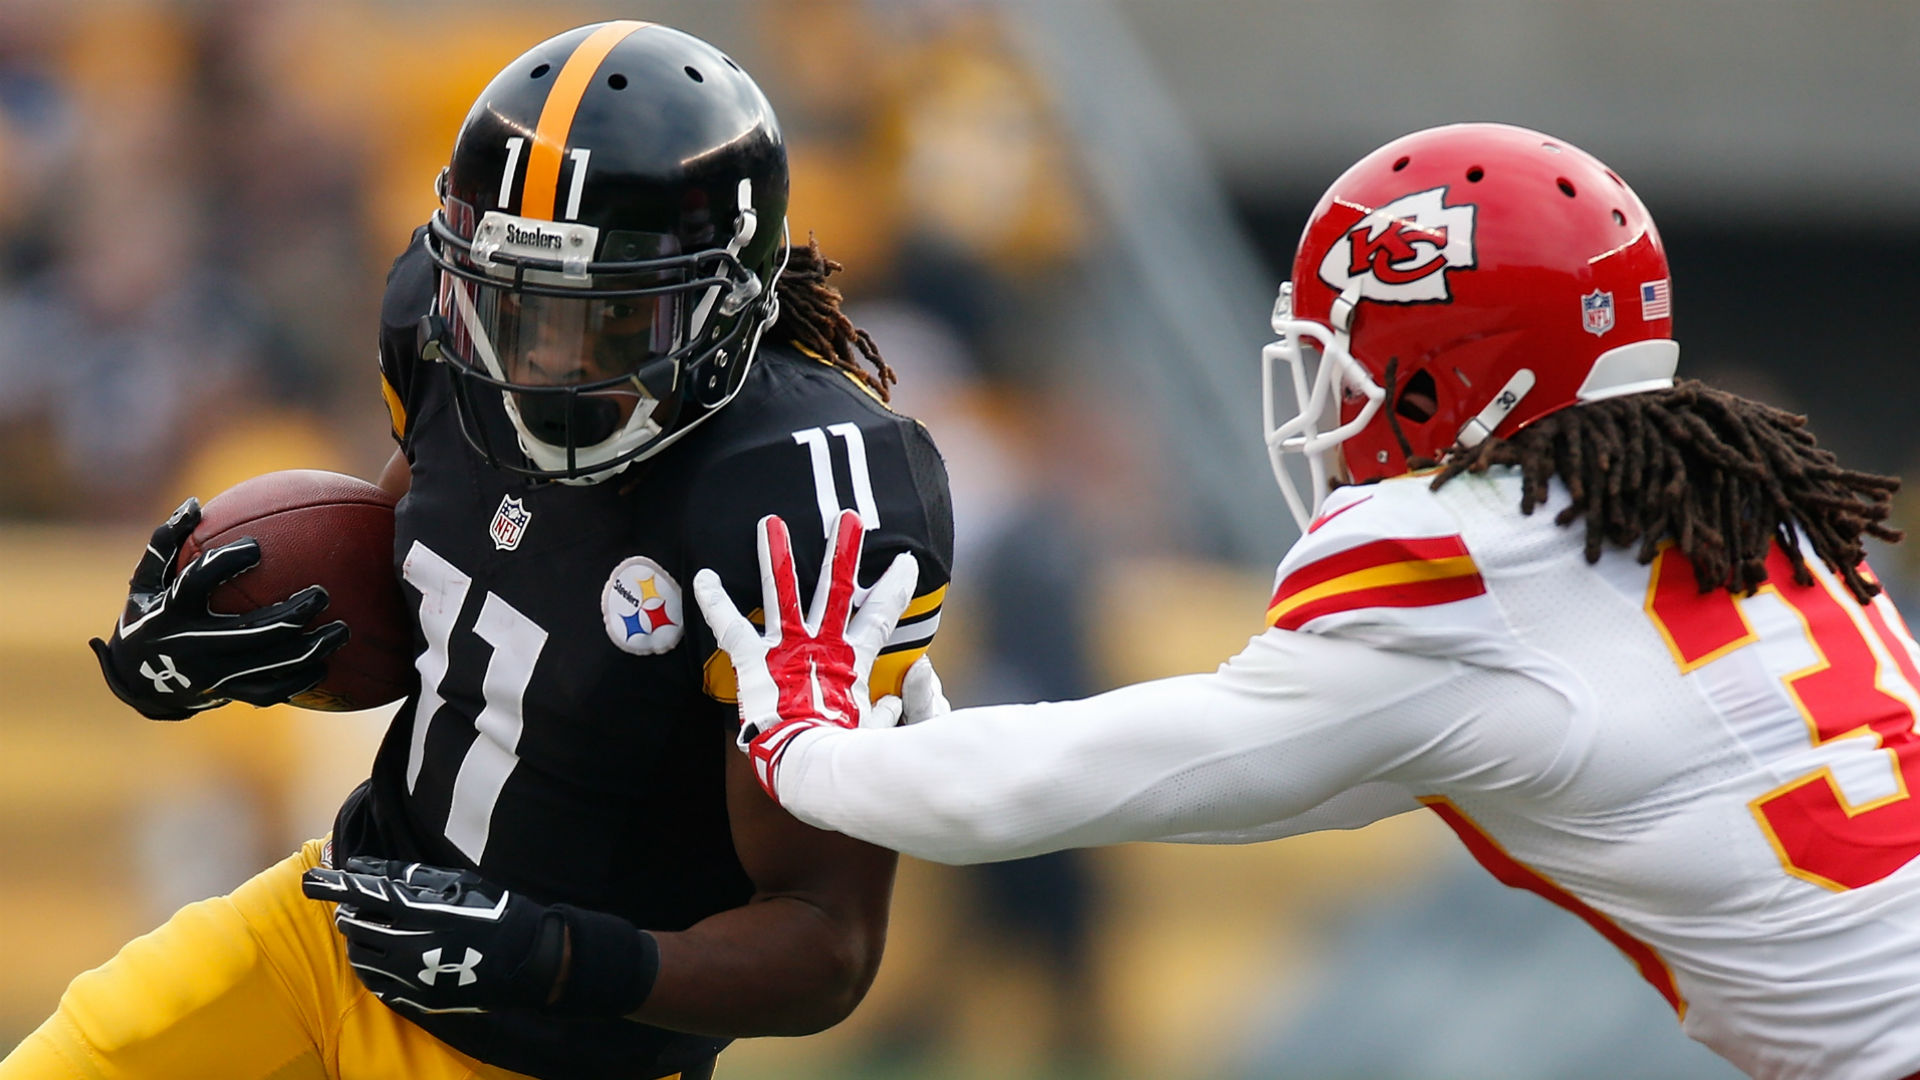 Ben Roethlisberger thinks Markus Wheaton is Steelers' 'breakout player'